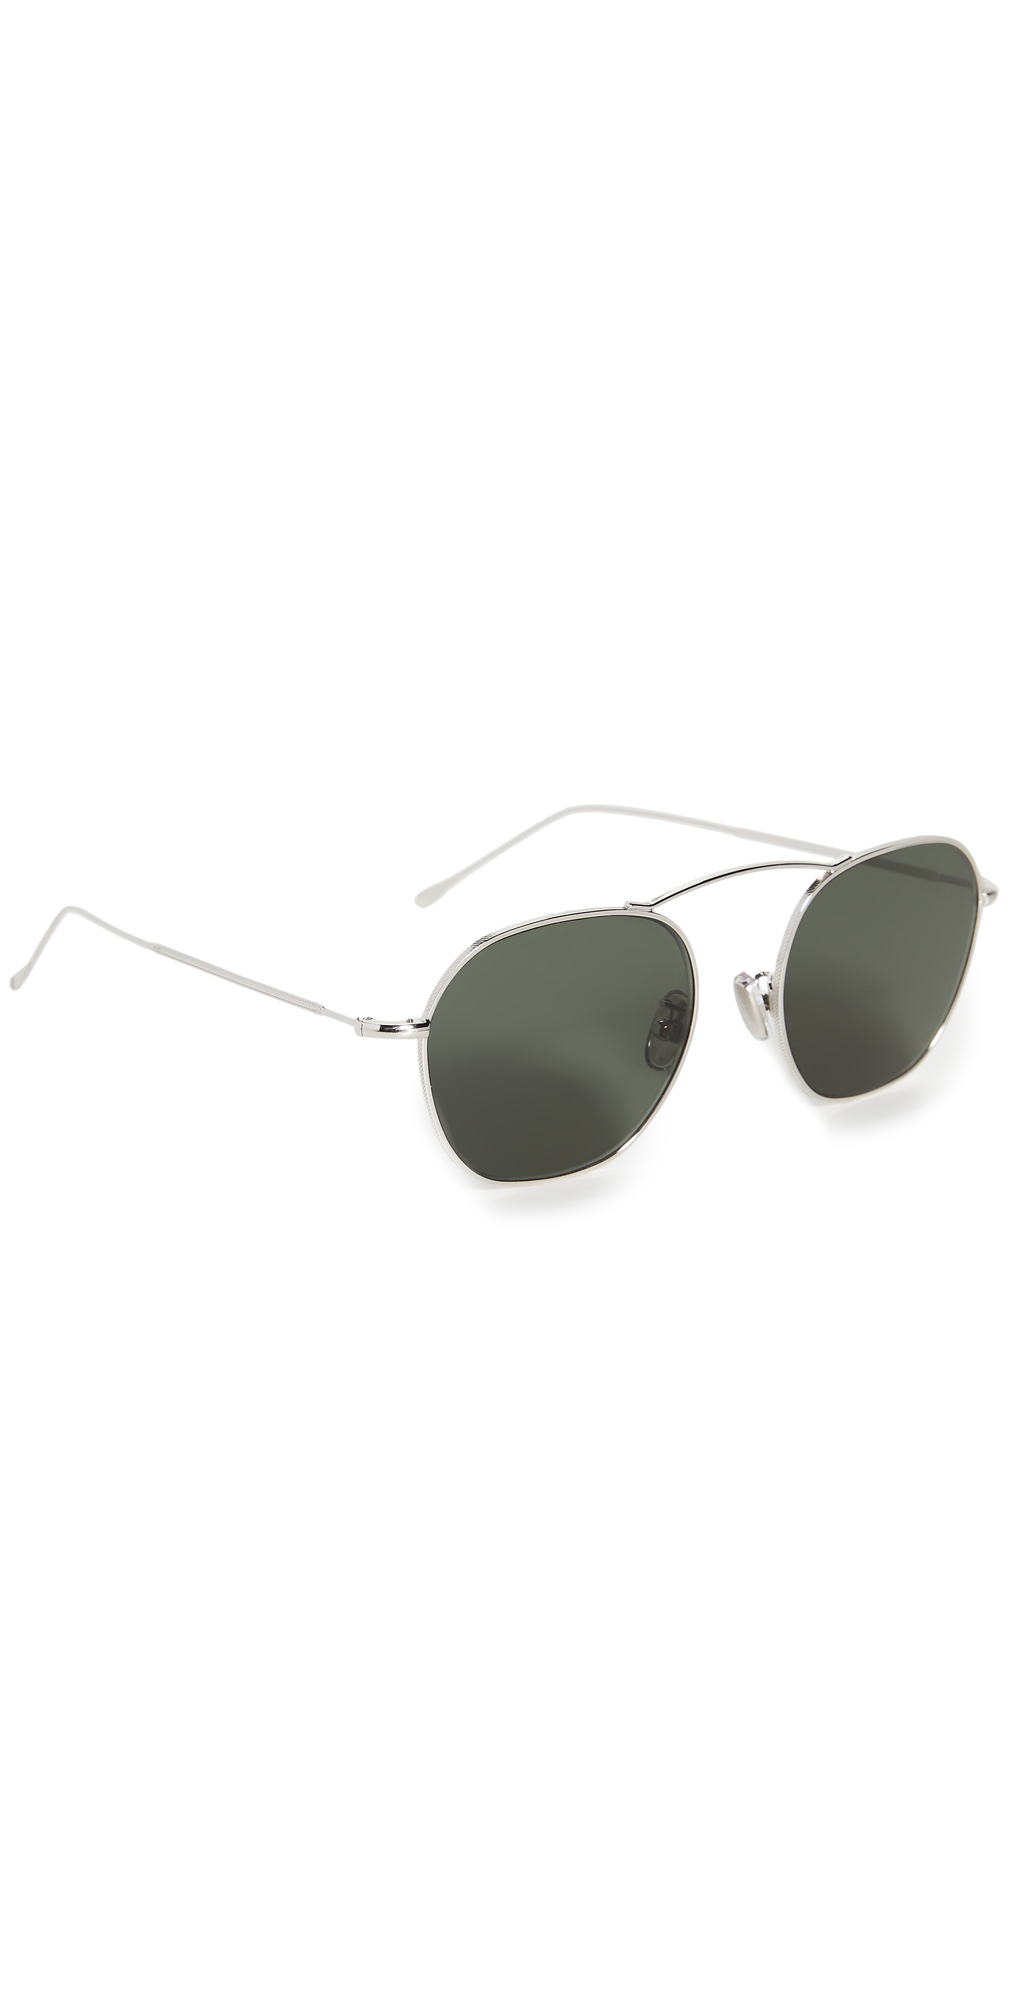 Bowery 54 Silver with Olive Flat Lenses